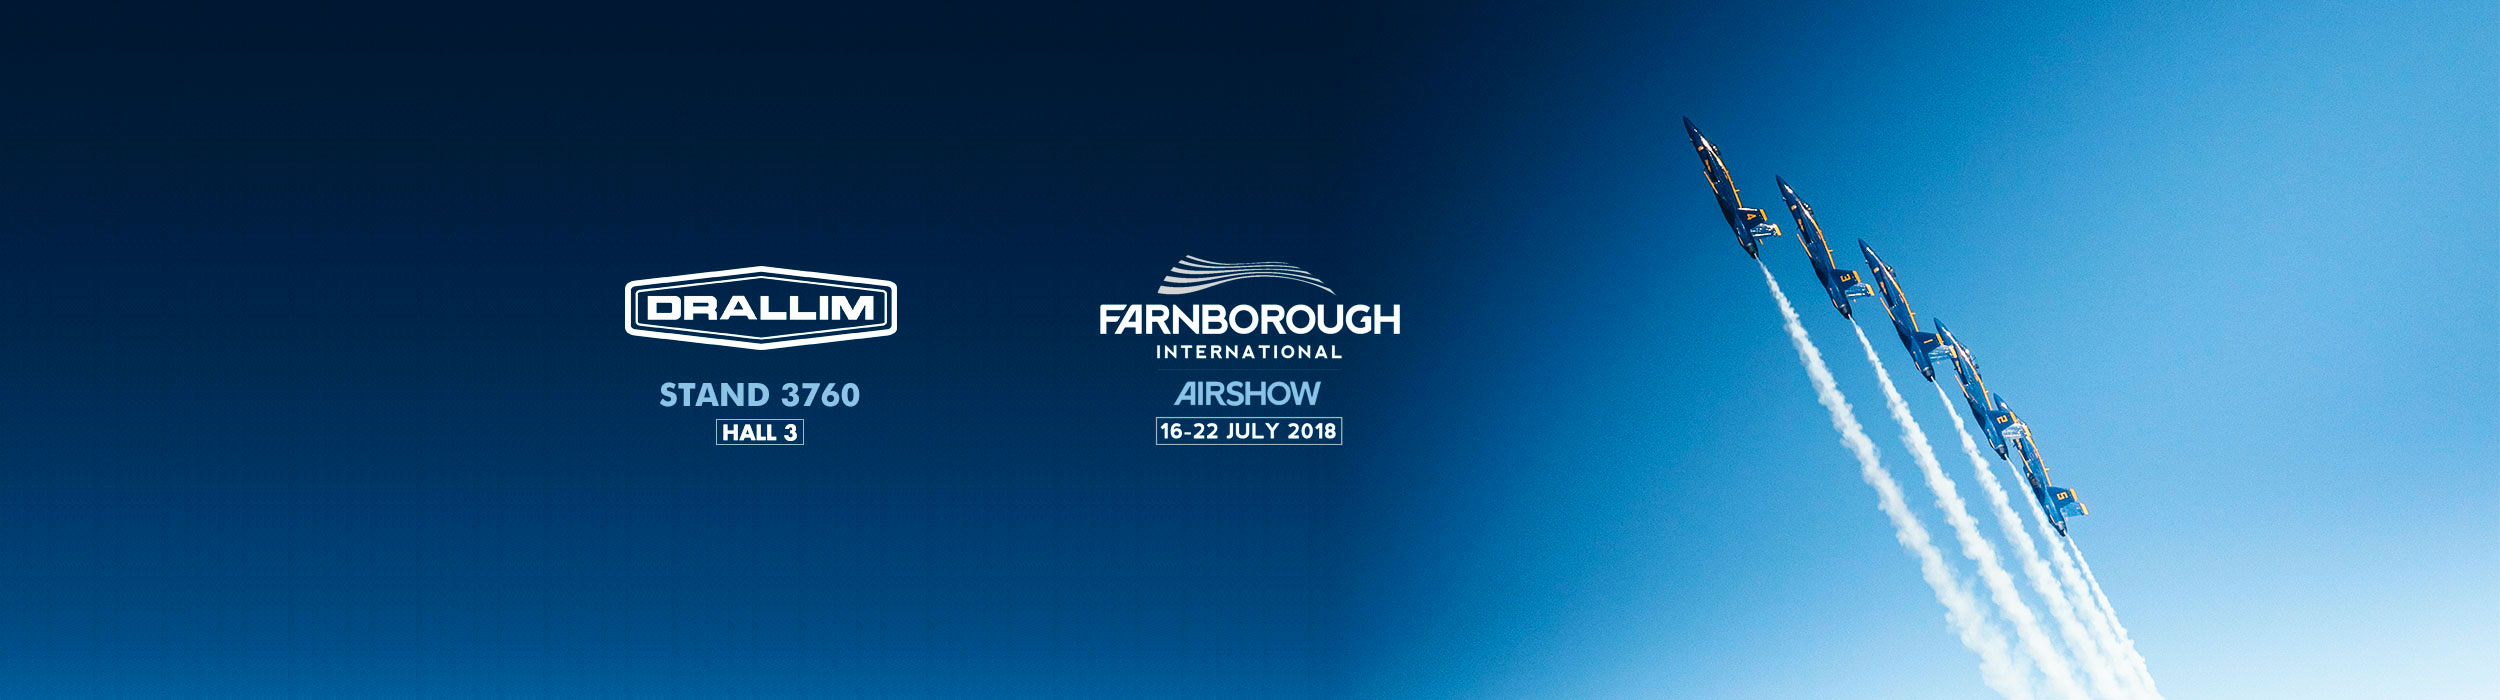 Farnborough International Airshow 2018